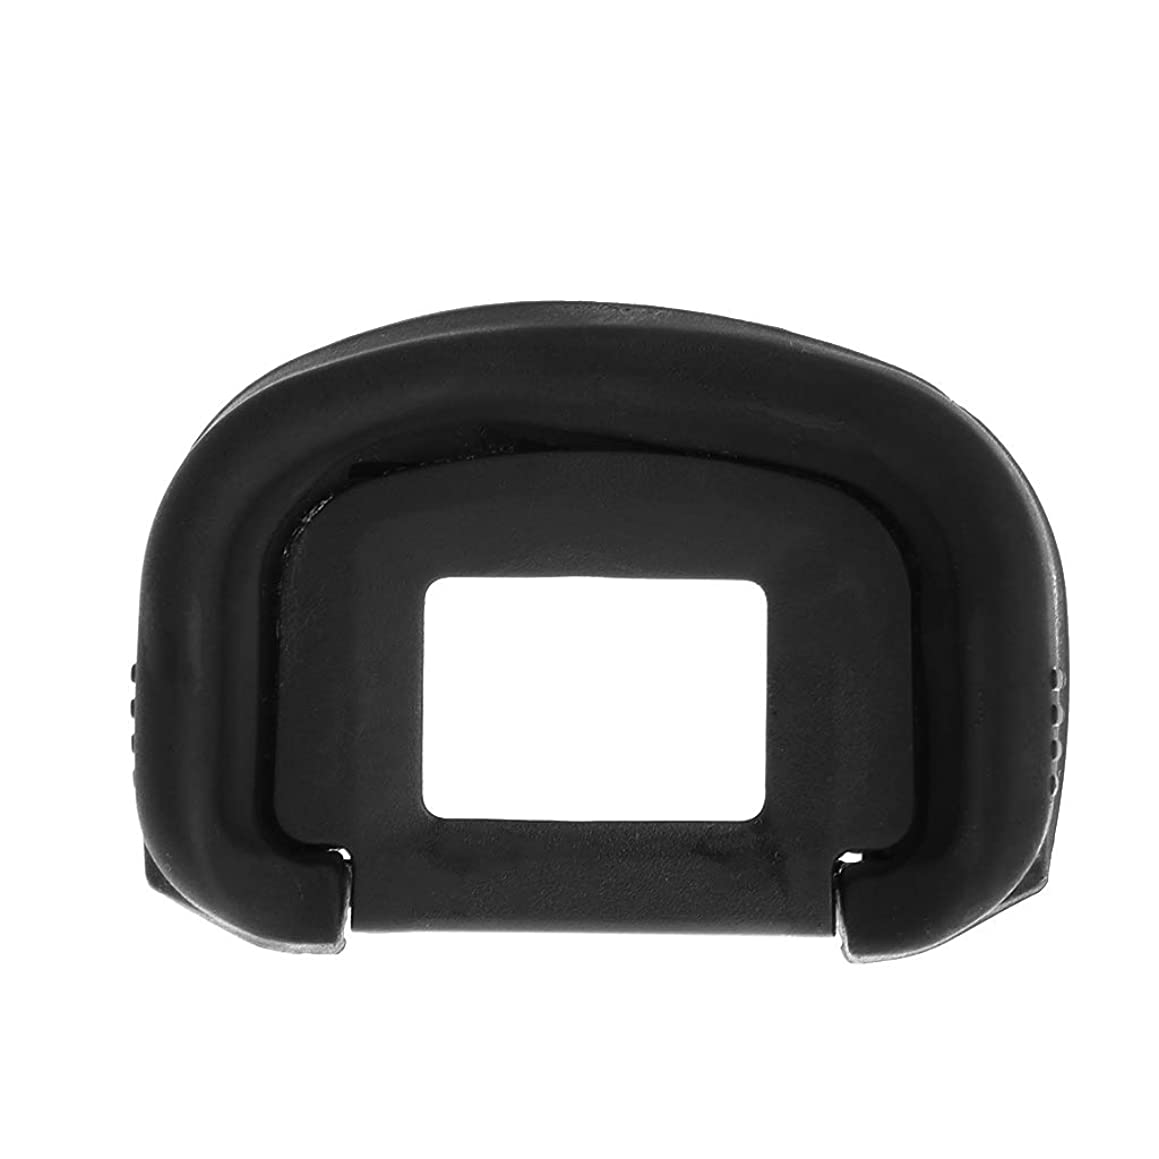 Wytinug Rubber Eye Cup Eyecup EG Eyepiece for Canon 1DX 1Ds3 1D3 1D4 5D3 5DIII 7D 3SLR